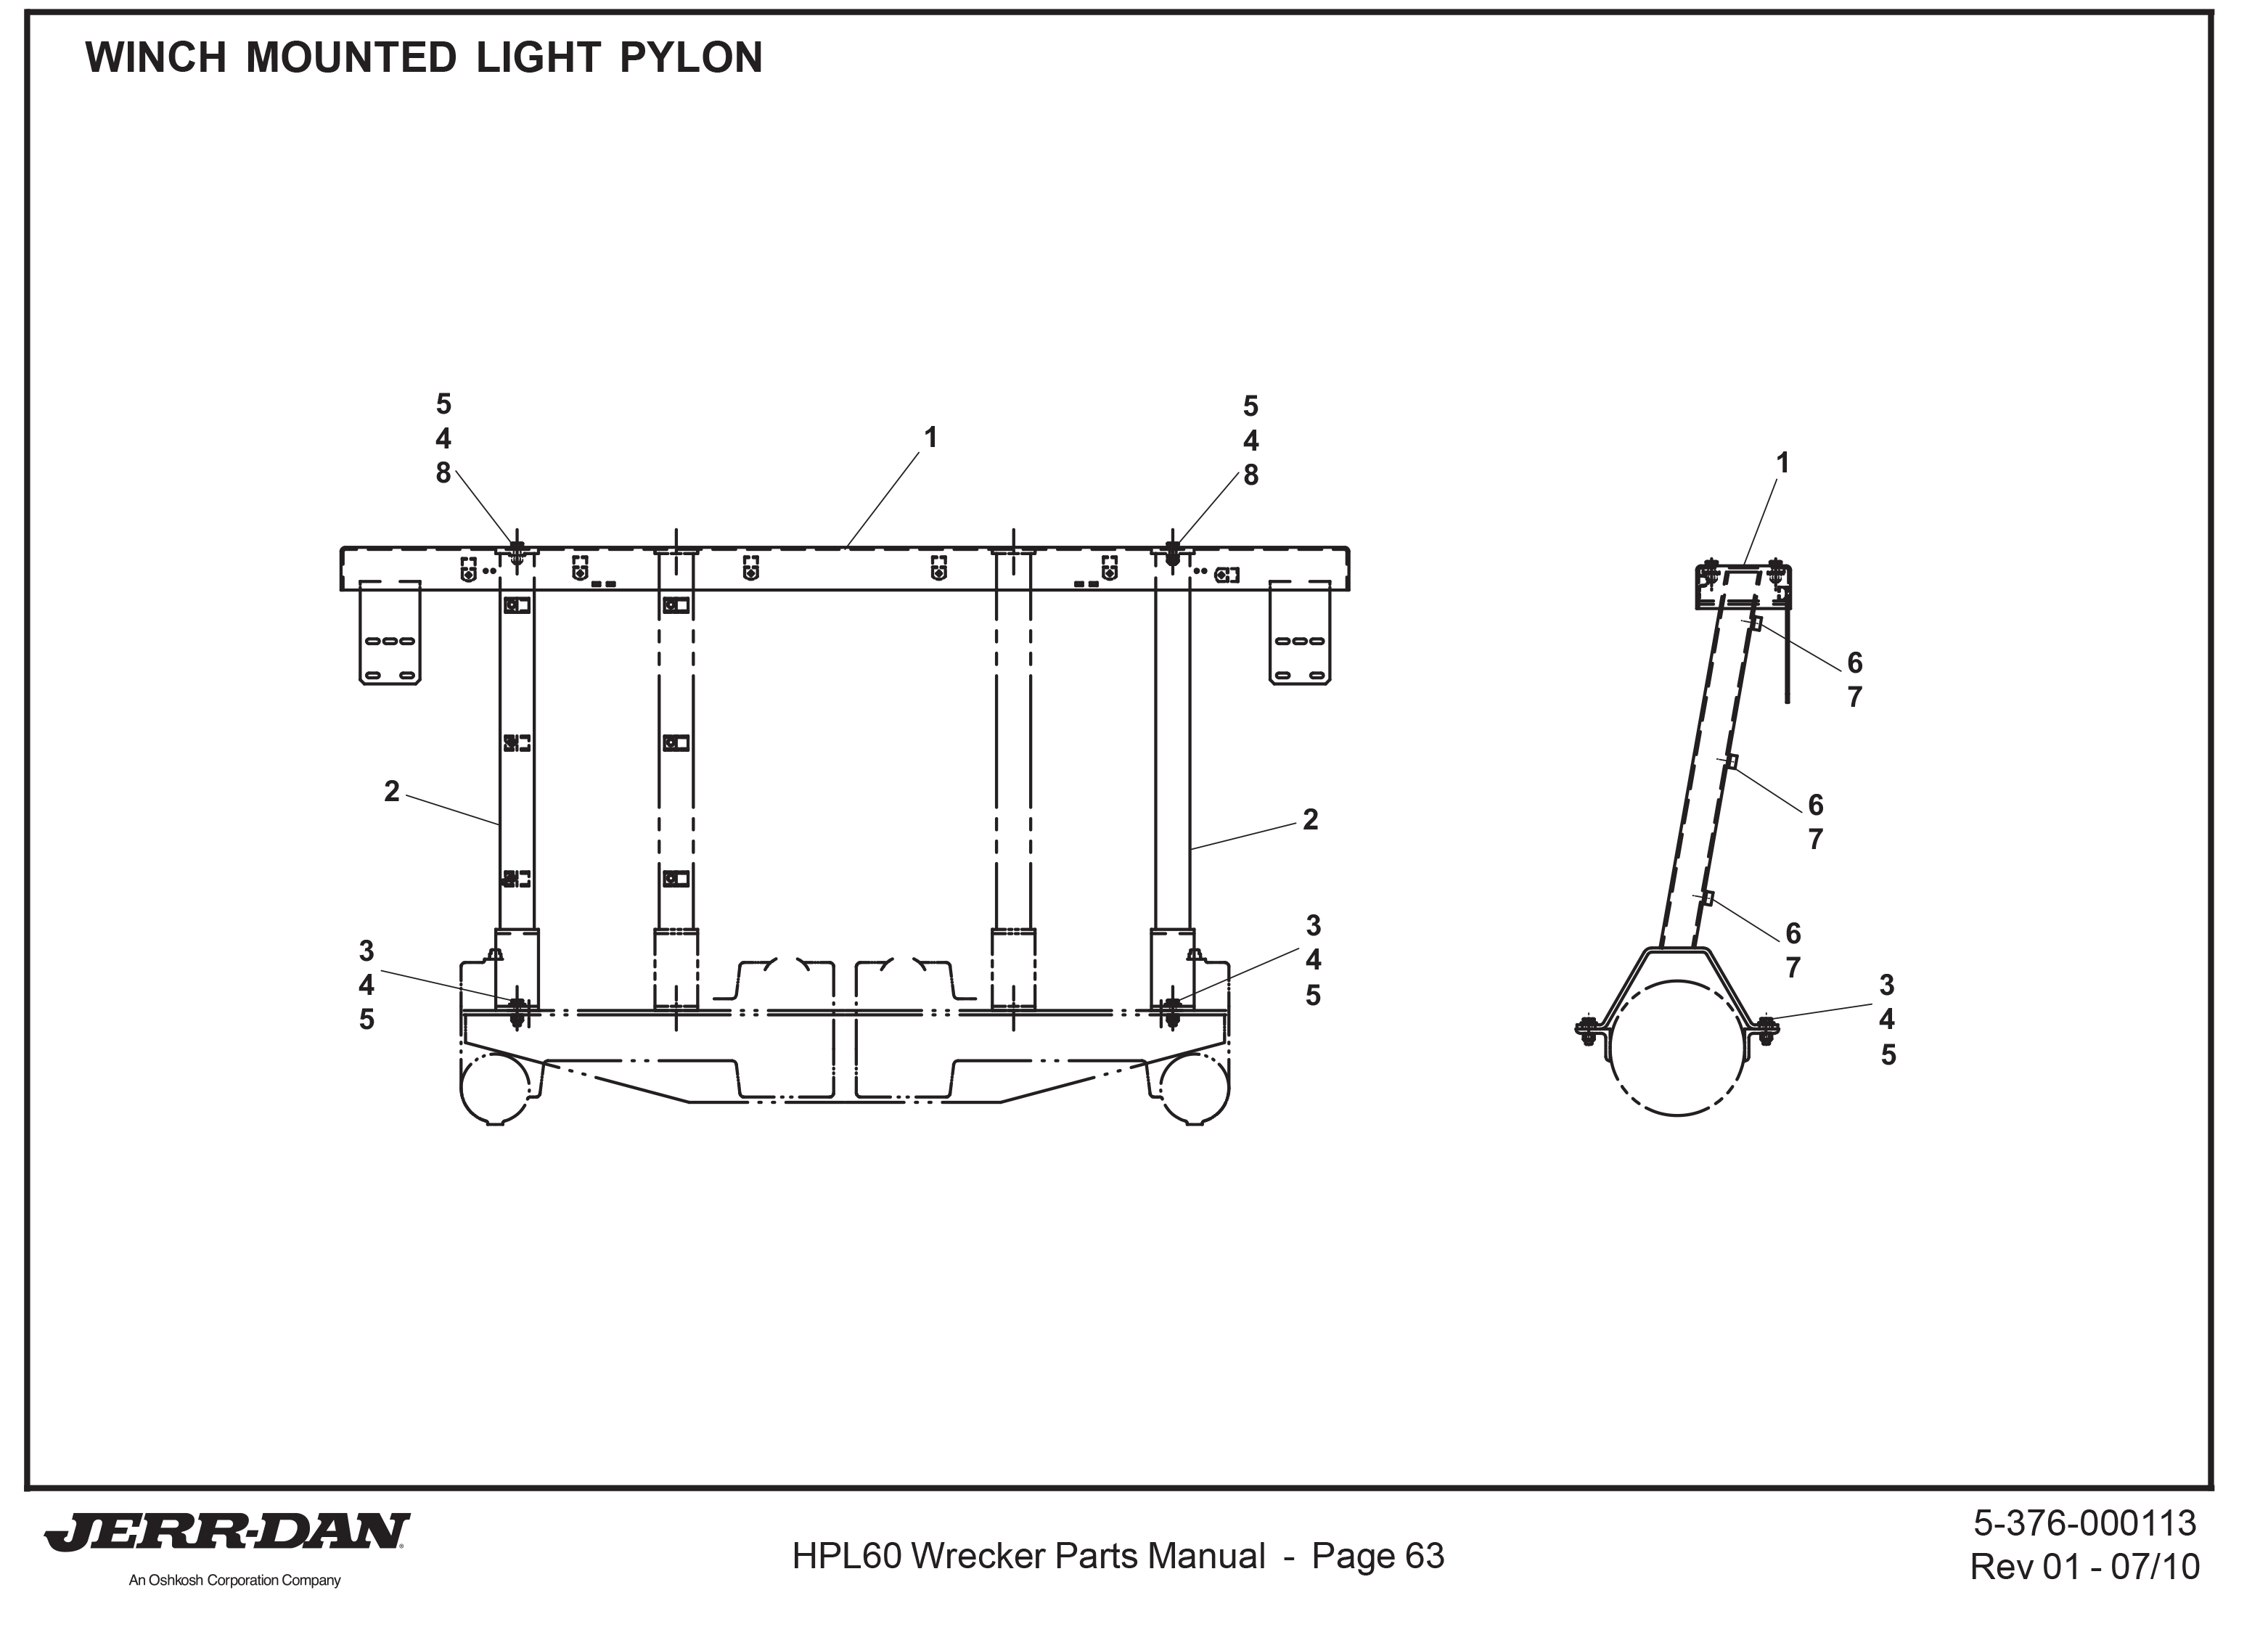 Ford 7 Way Trailer Ke Wiring Diagram. Ford. Auto Wiring